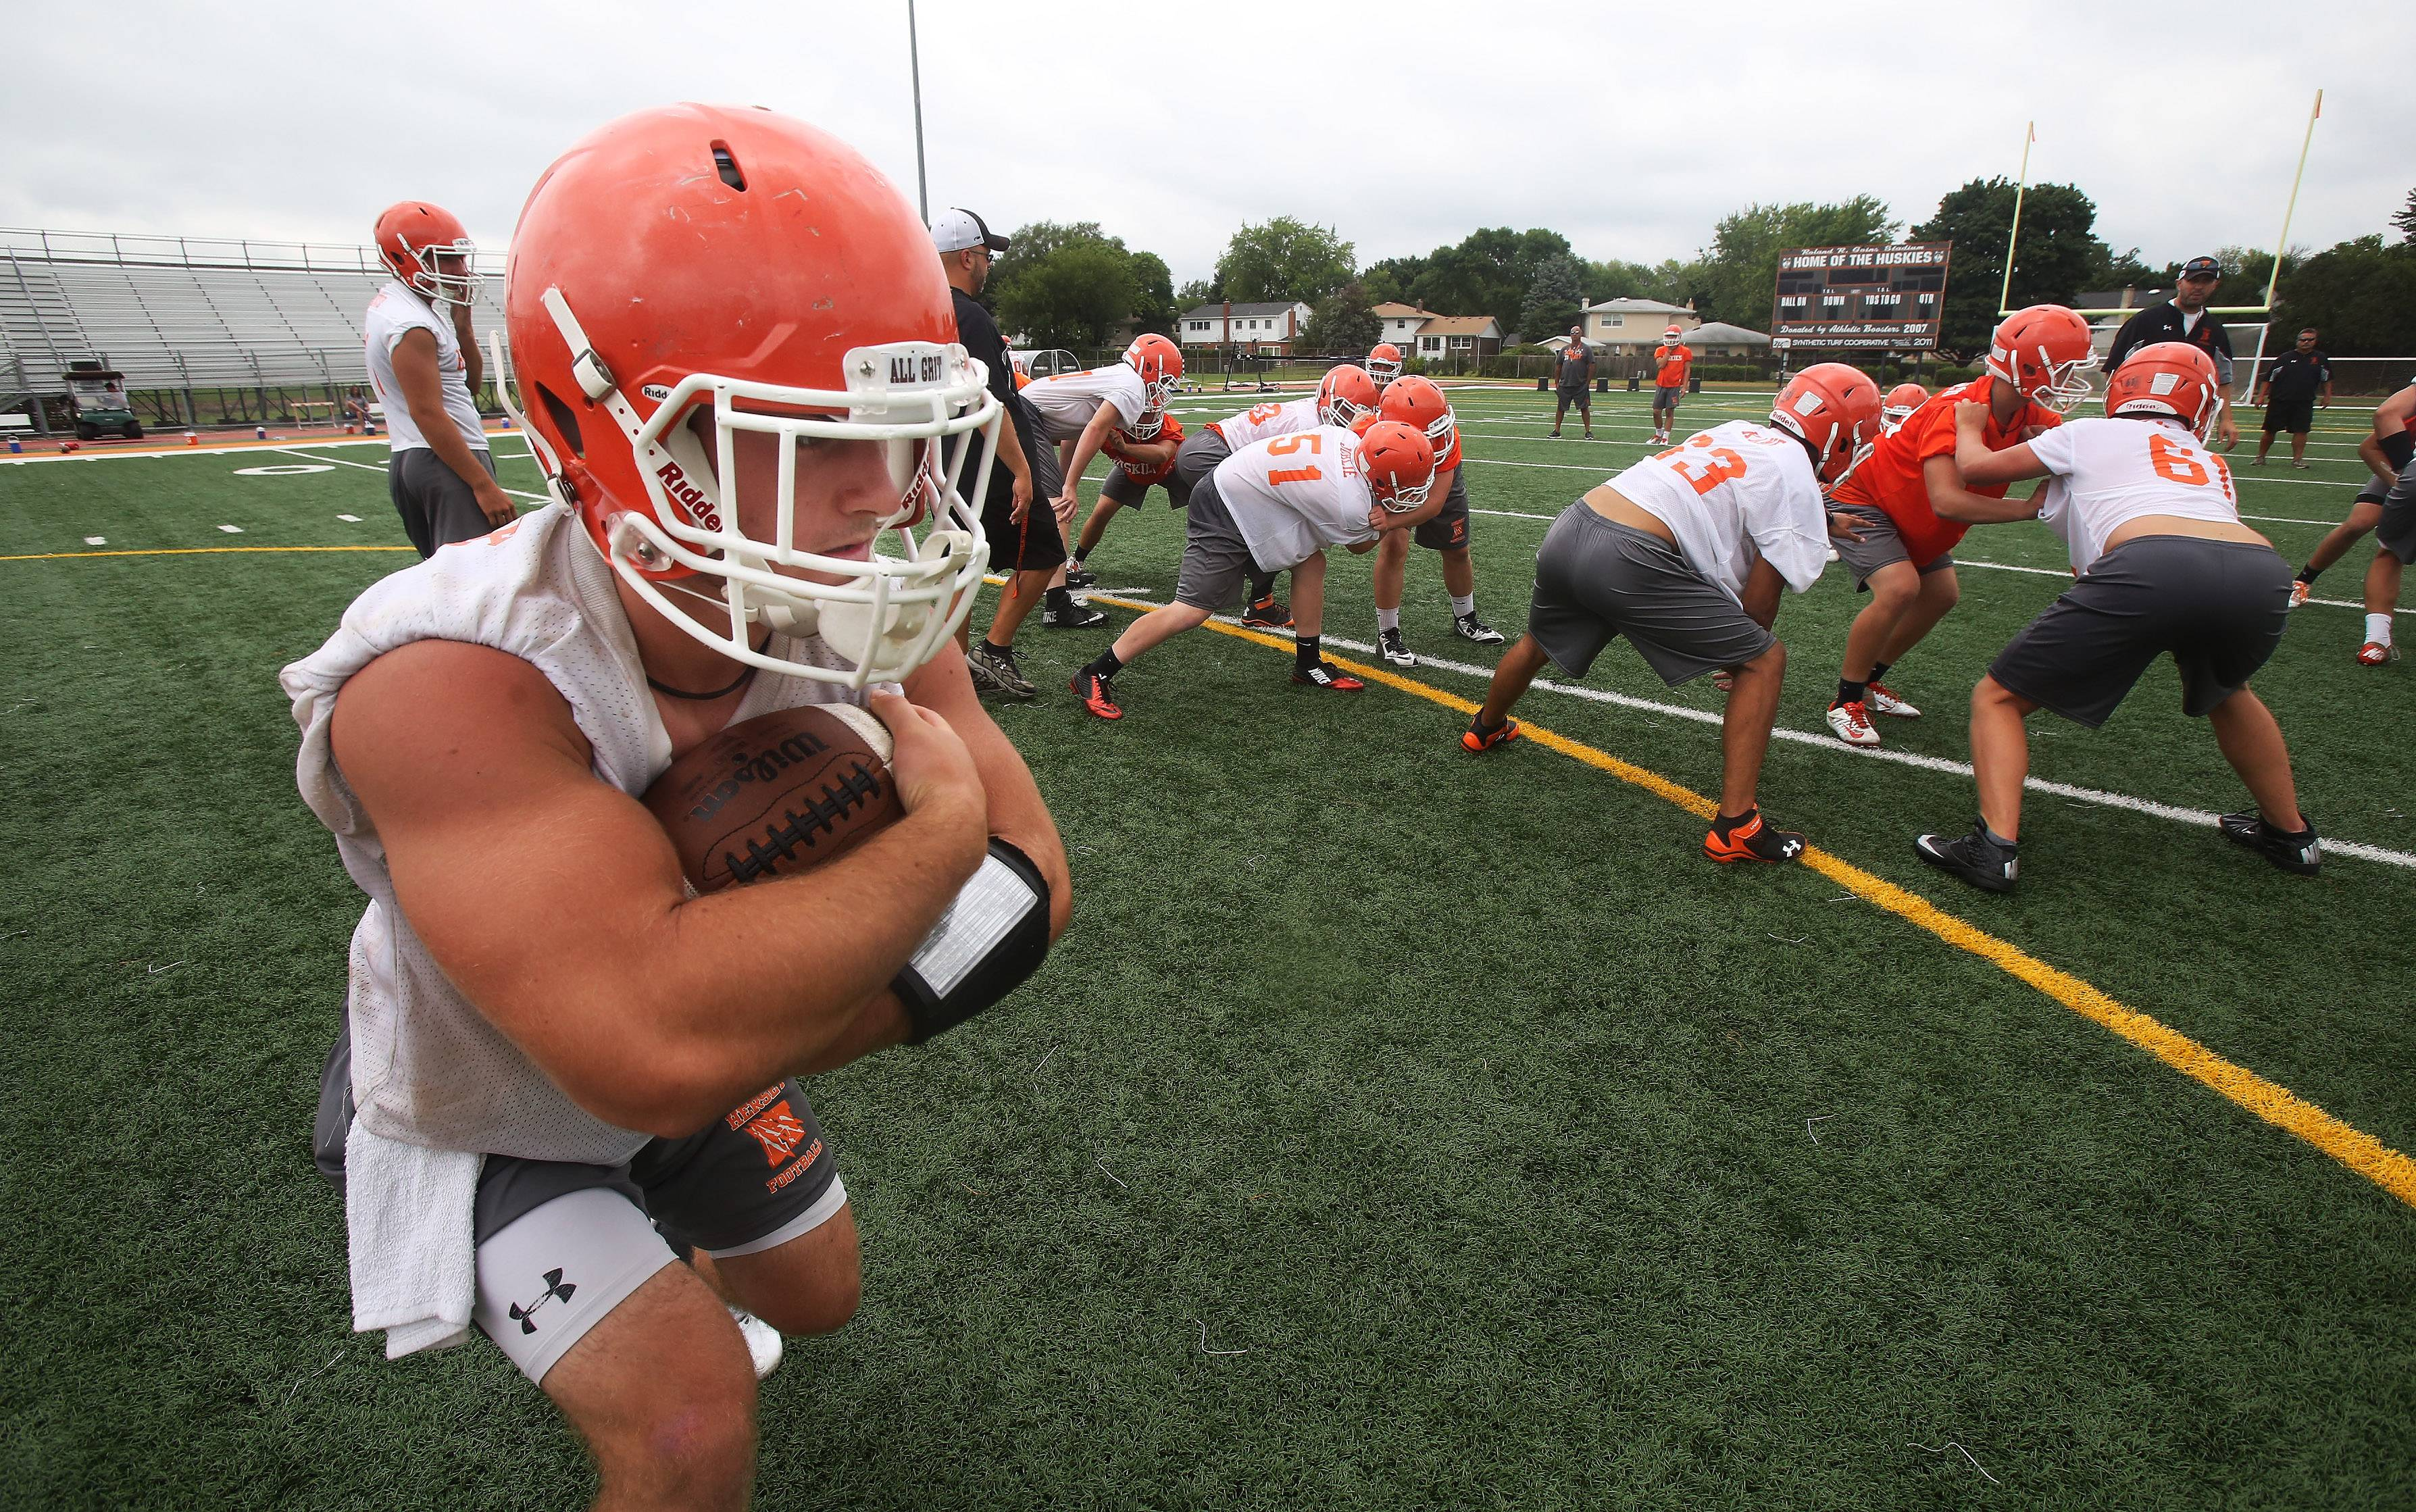 Running back Chase Bandolik carries the ball during the first day of football practice at Hersey on Monday.